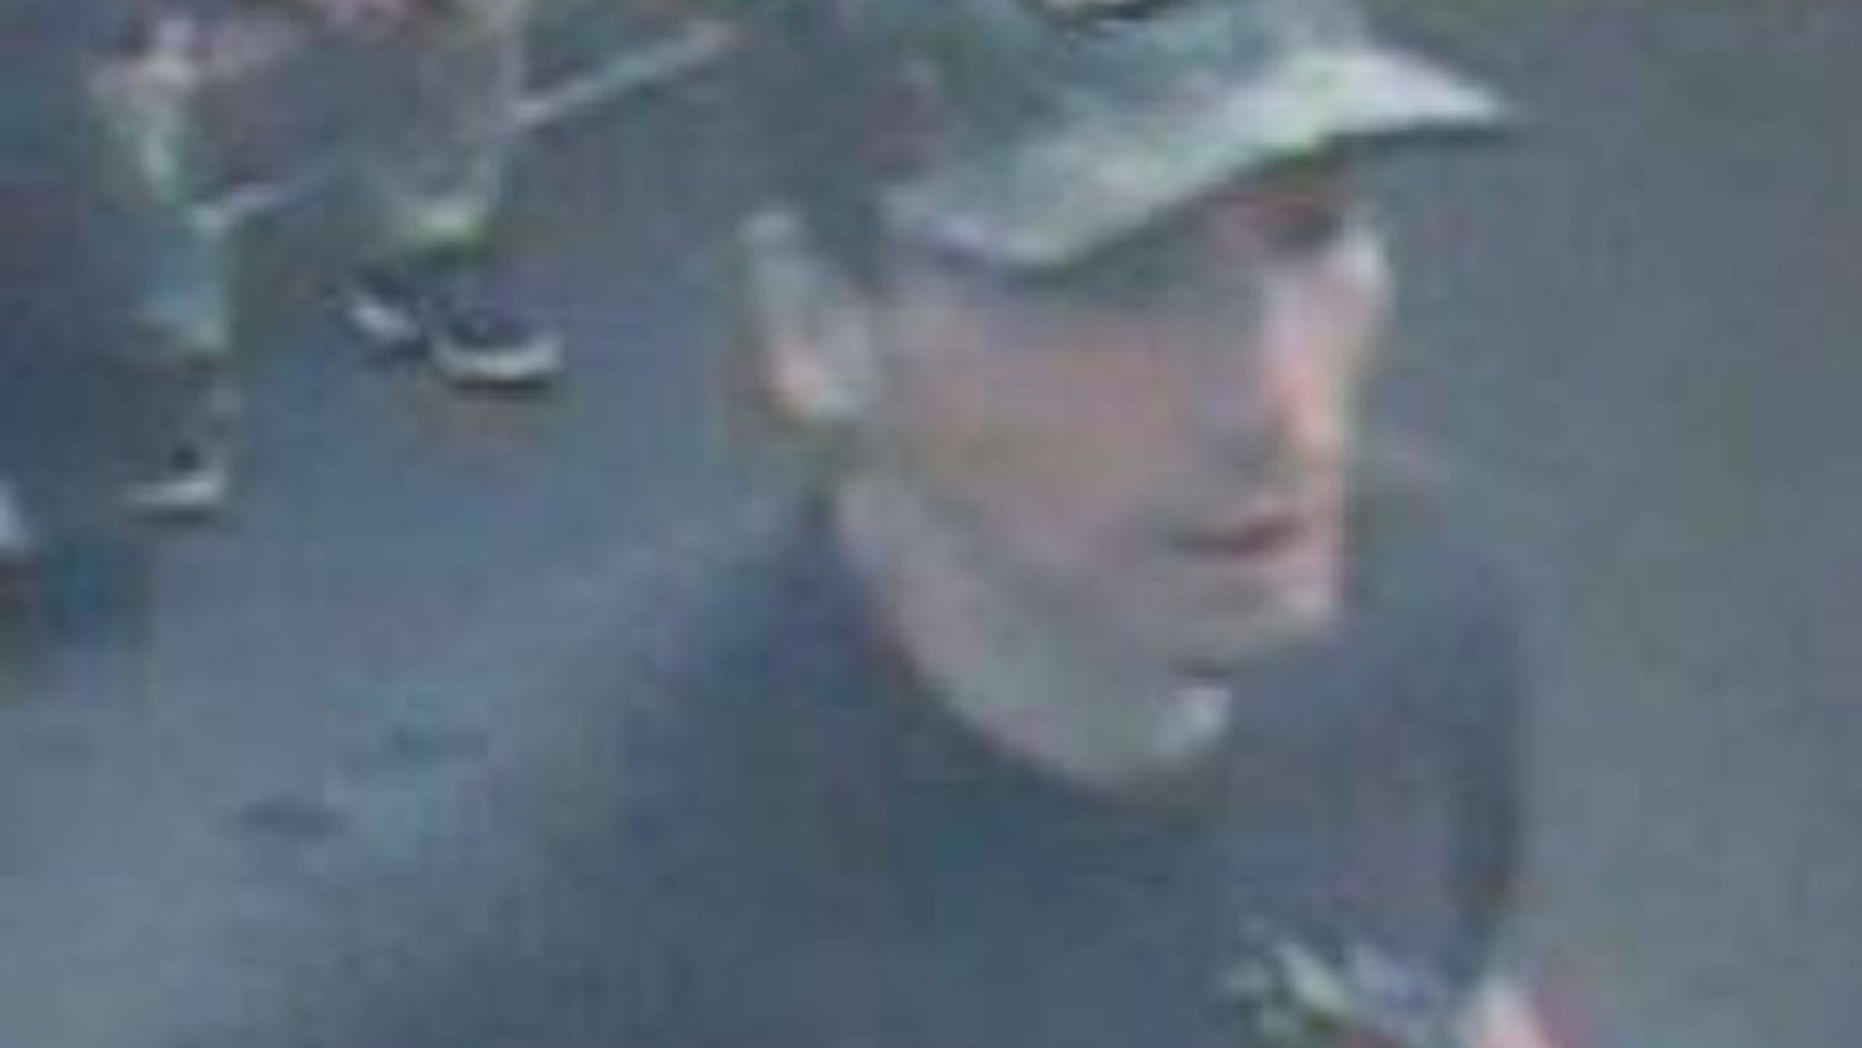 The man in this photo used another man's ID to pay for an expensive medical procedure, say police in Daly City, Calif.